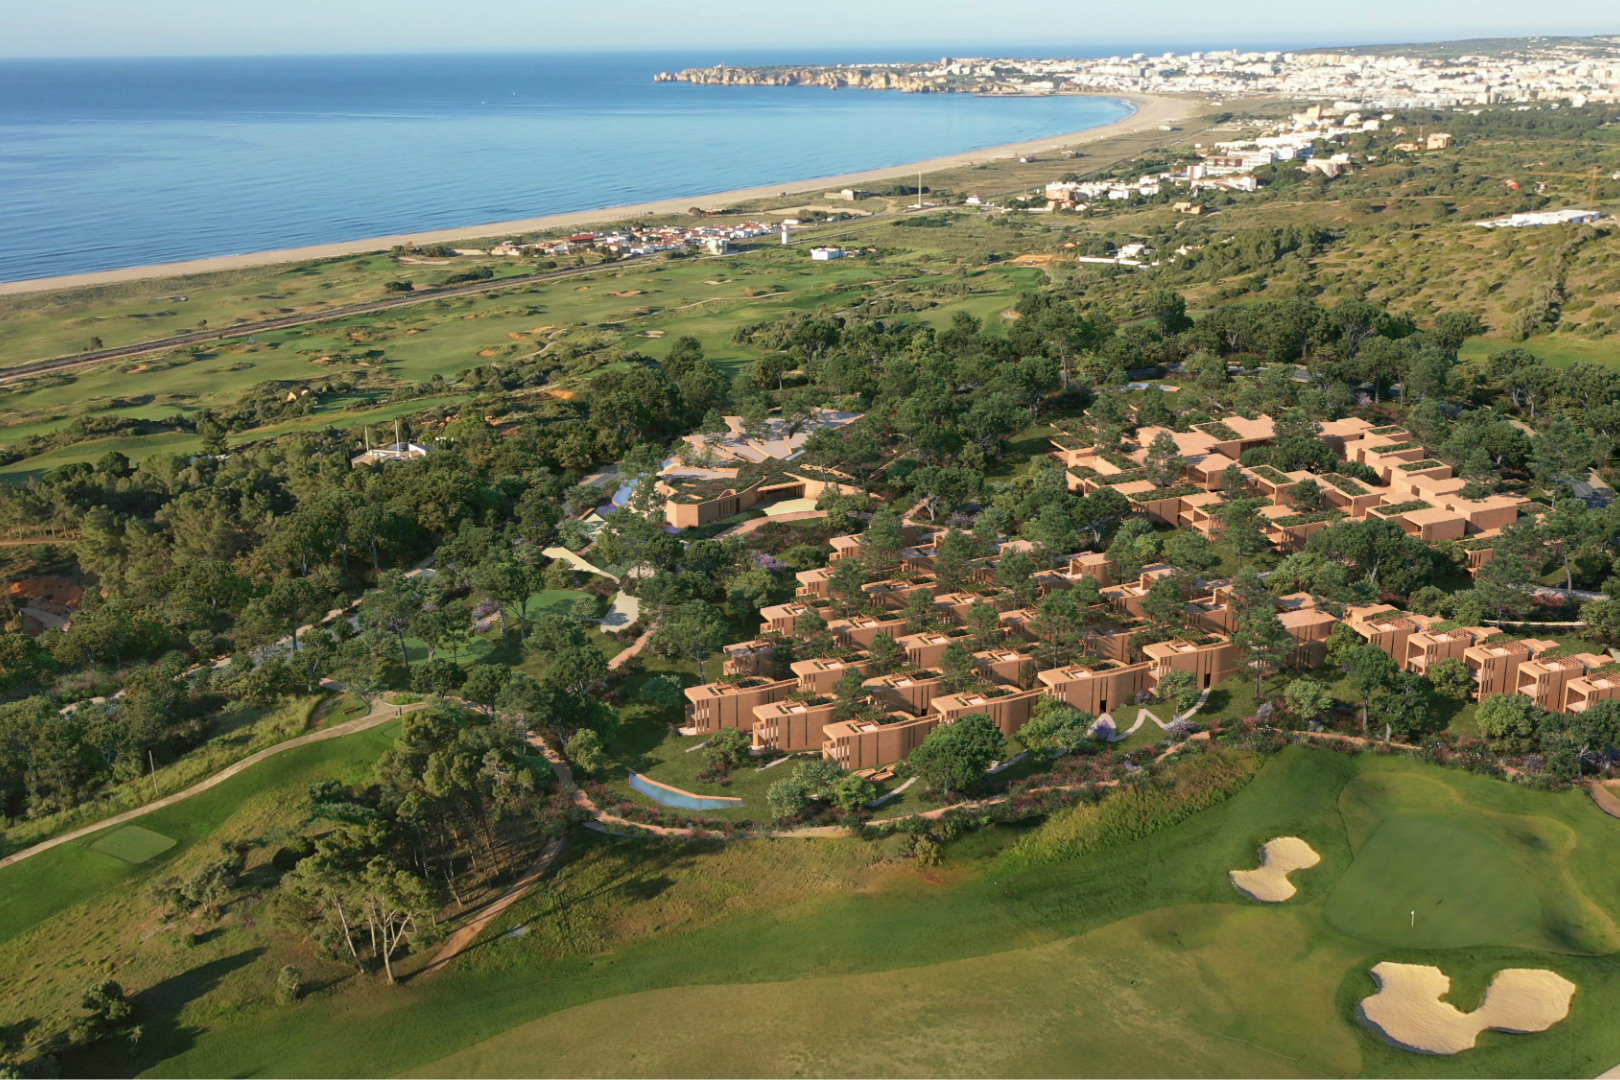 Aerial view of Palmares apartments